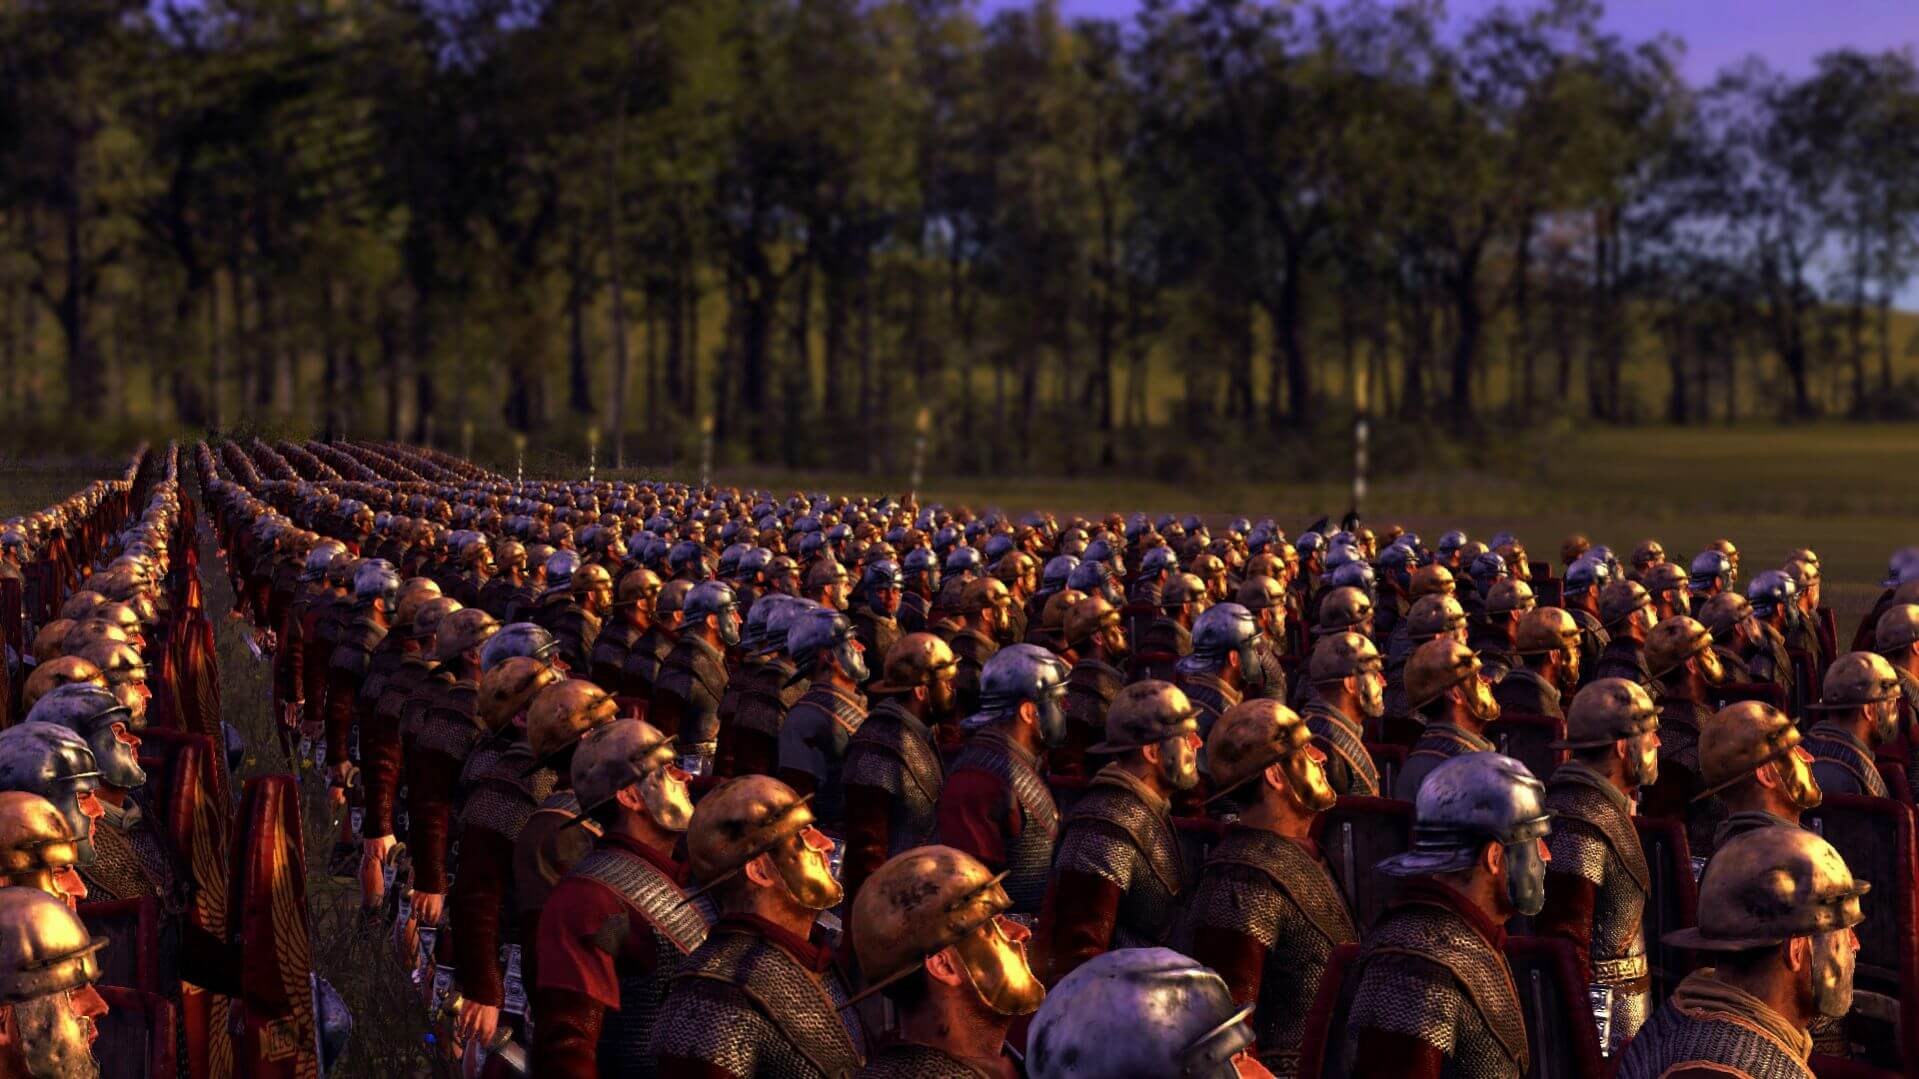 A Roman Empire-themed battle royale would be fantastic